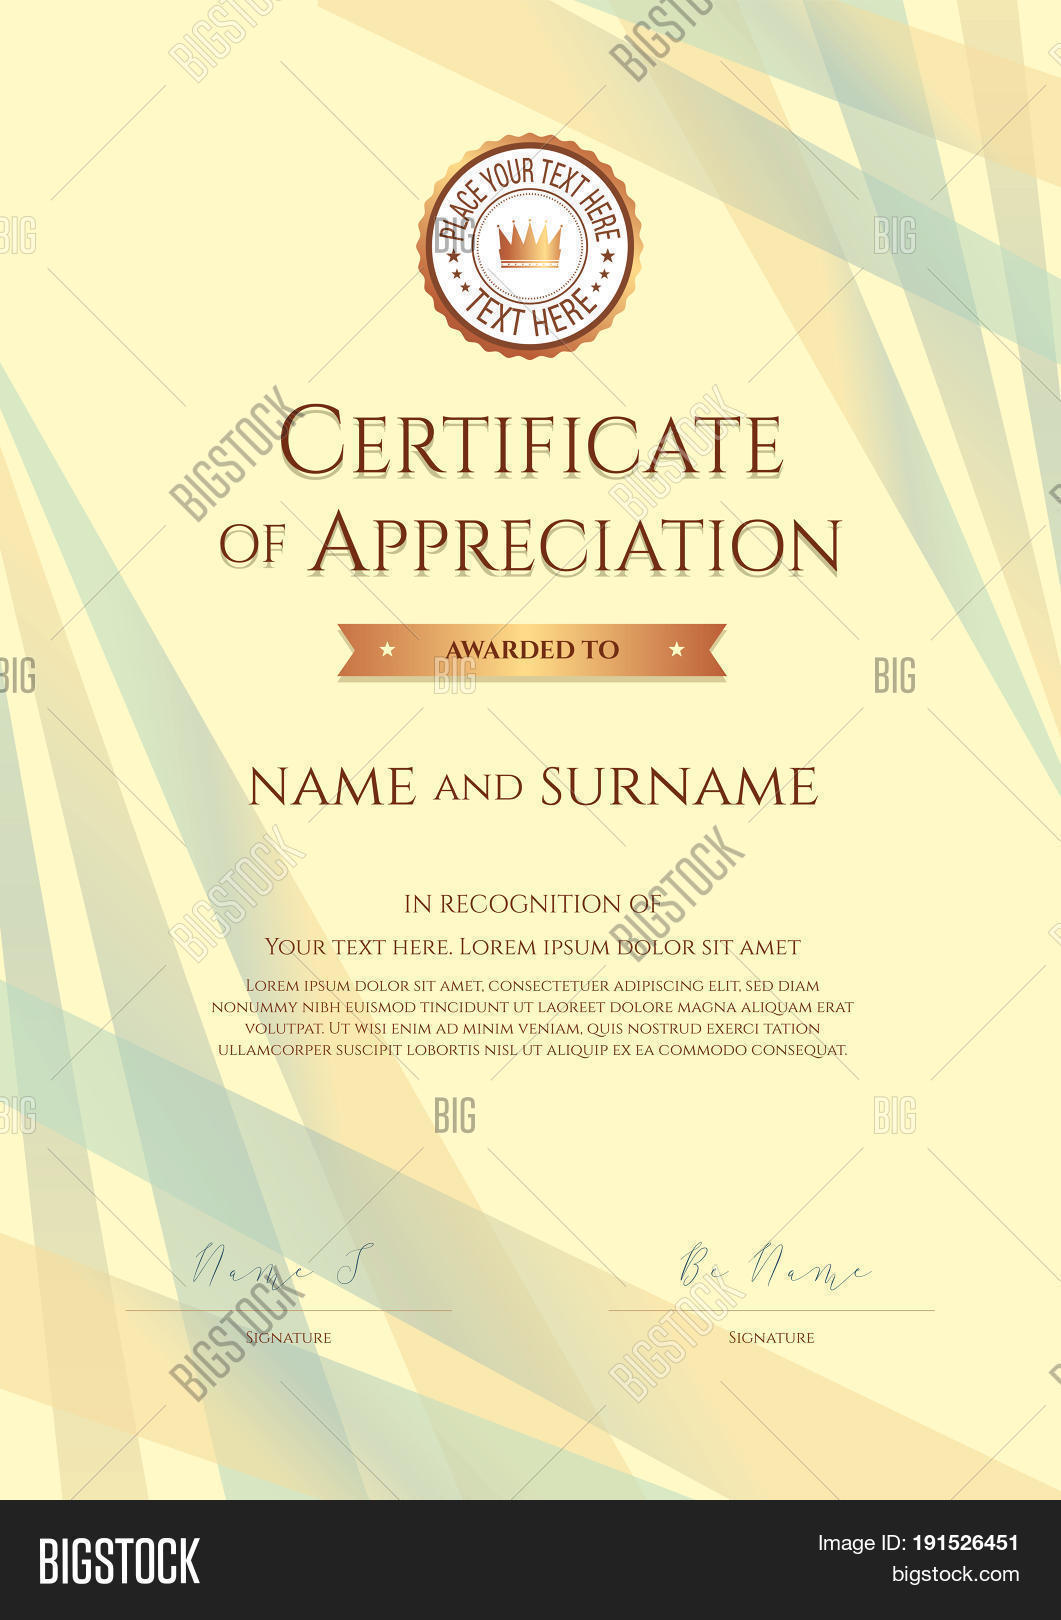 Certificate of thanks and appreciation template images templates portrait certificate appreciation vector photo bigstock portrait certificate of appreciation template with award ribbon on abstract yadclub Images